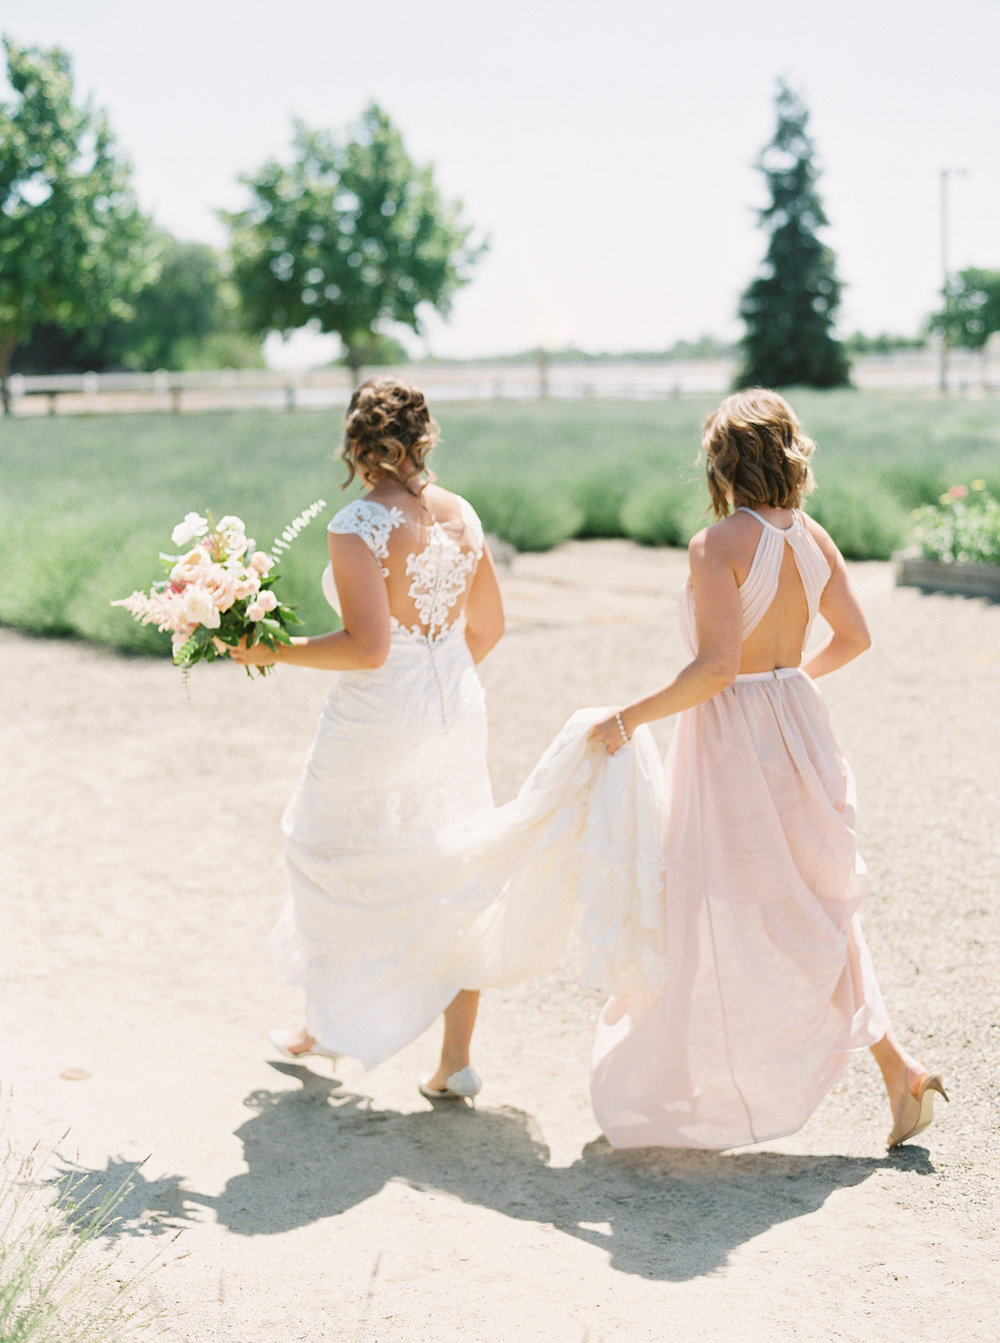 pageo-lavender-farm-wedding-turlock-california-45.jpg